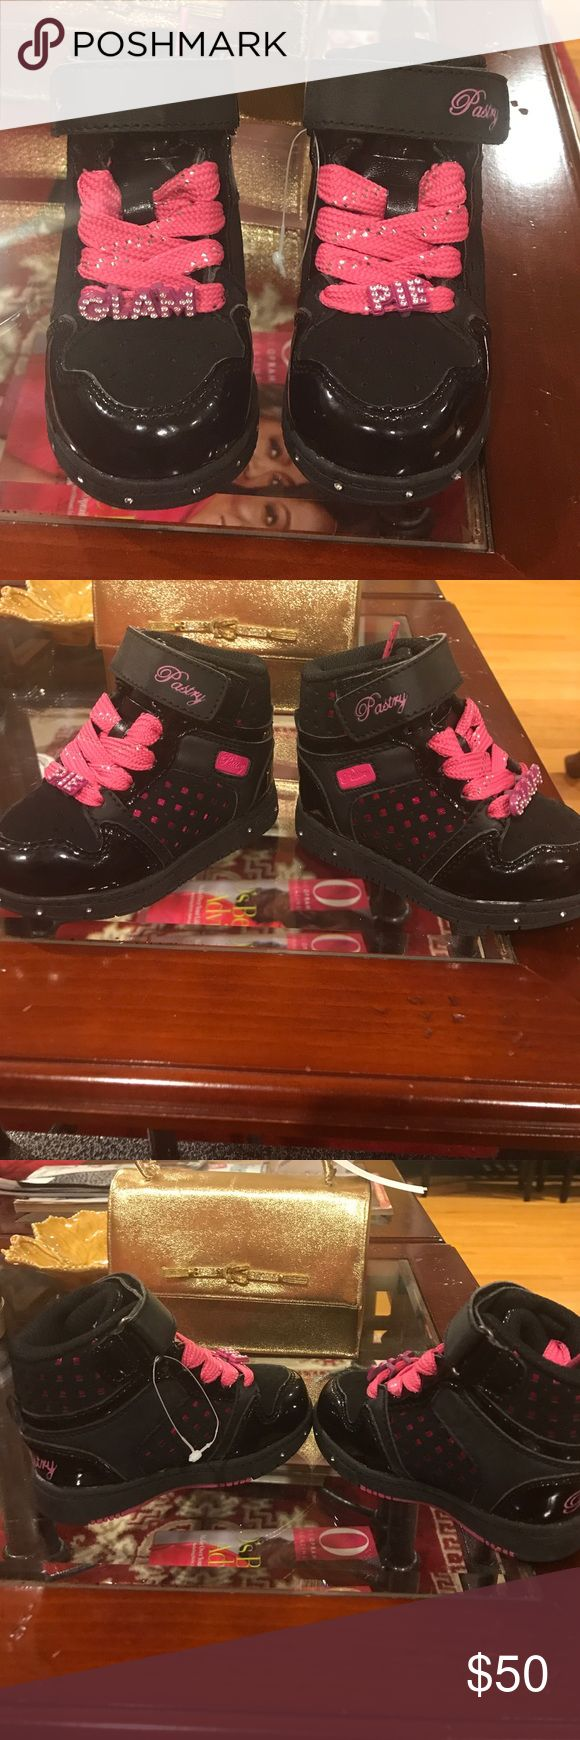 GLAM PIE PASTRY SNEAKER NWT GLAM PIE PASTRY SNEAKER NWT PASTRY GLAM PIE Shoes Sneakers